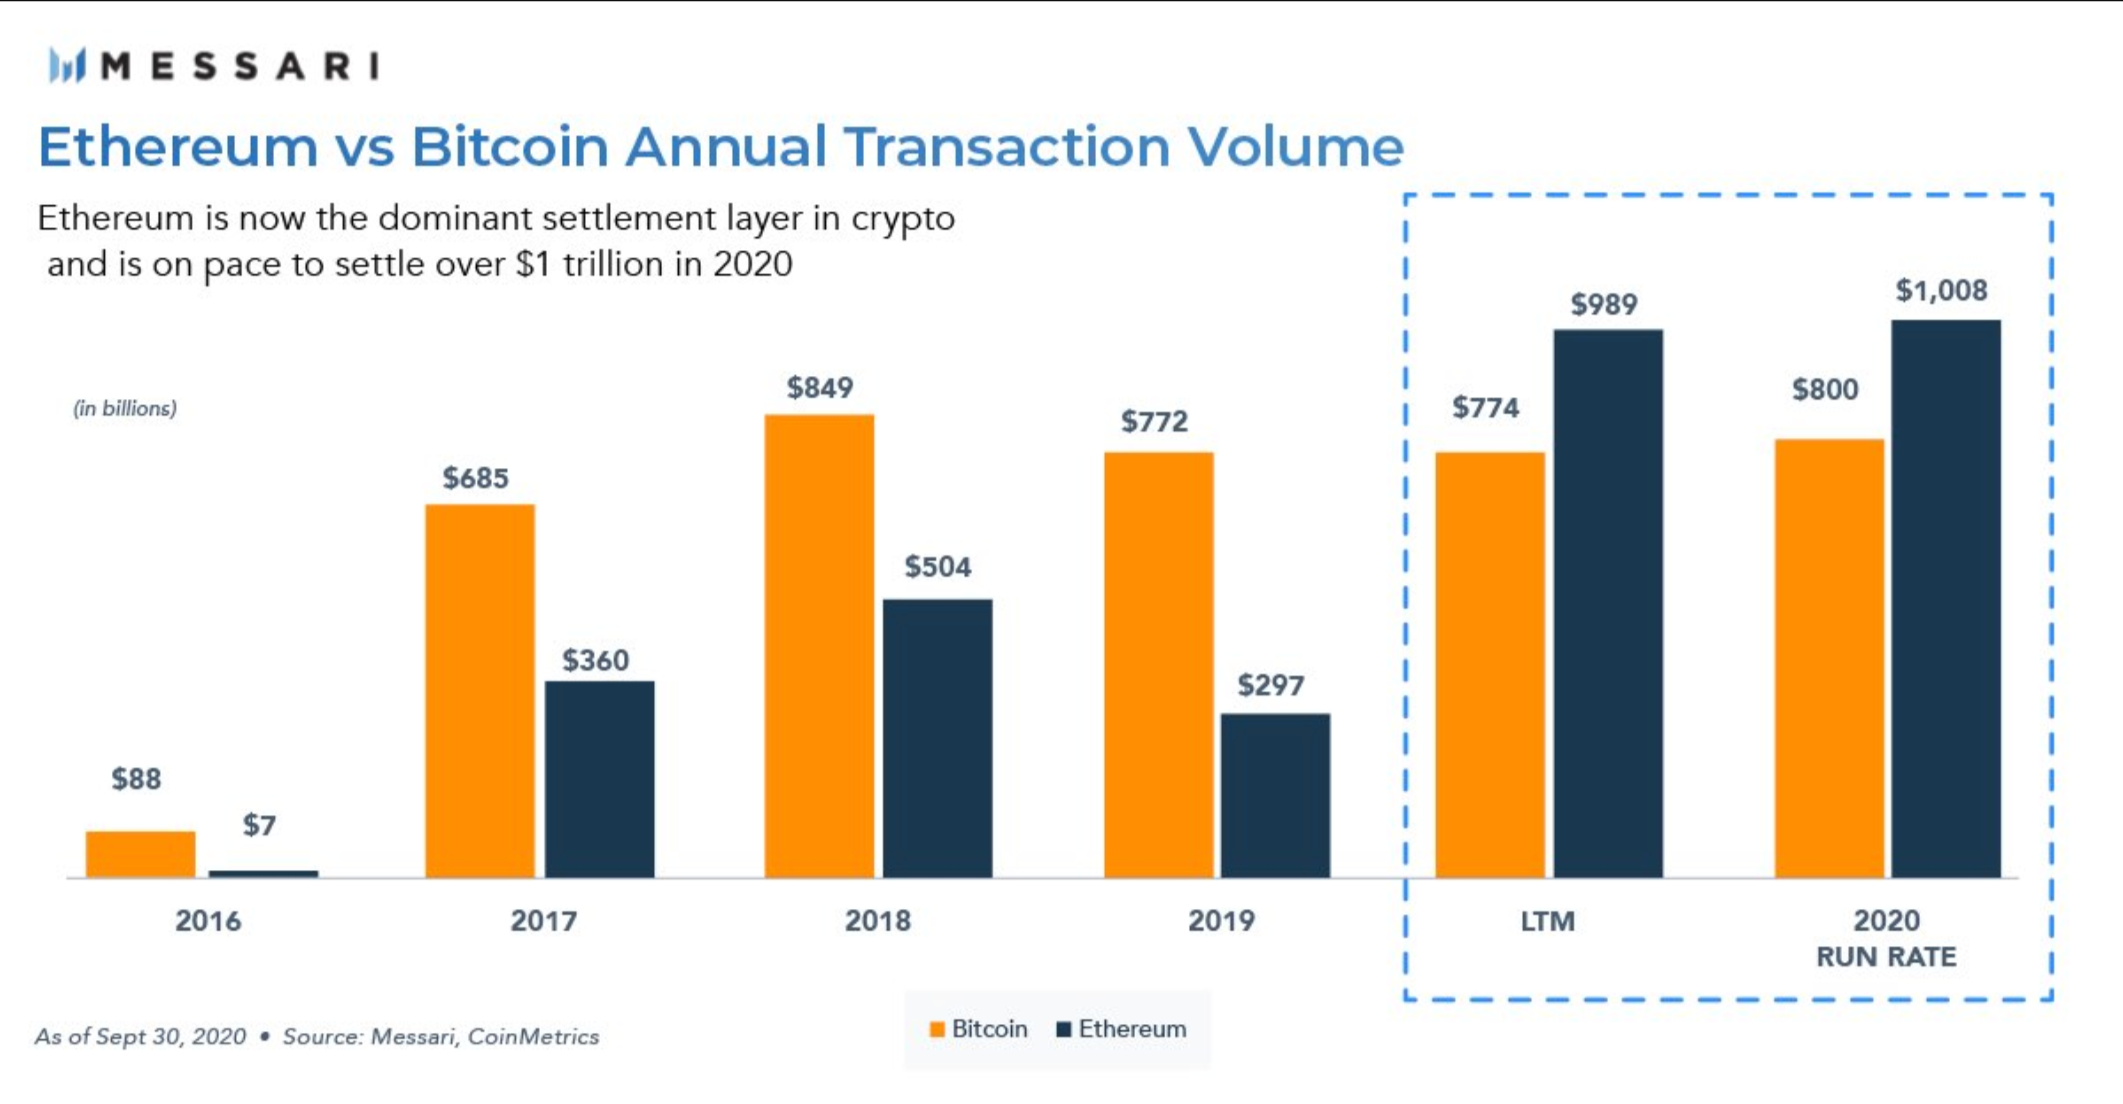 Messari chart showing Ethereum and Bitcoin annual transaction volumes